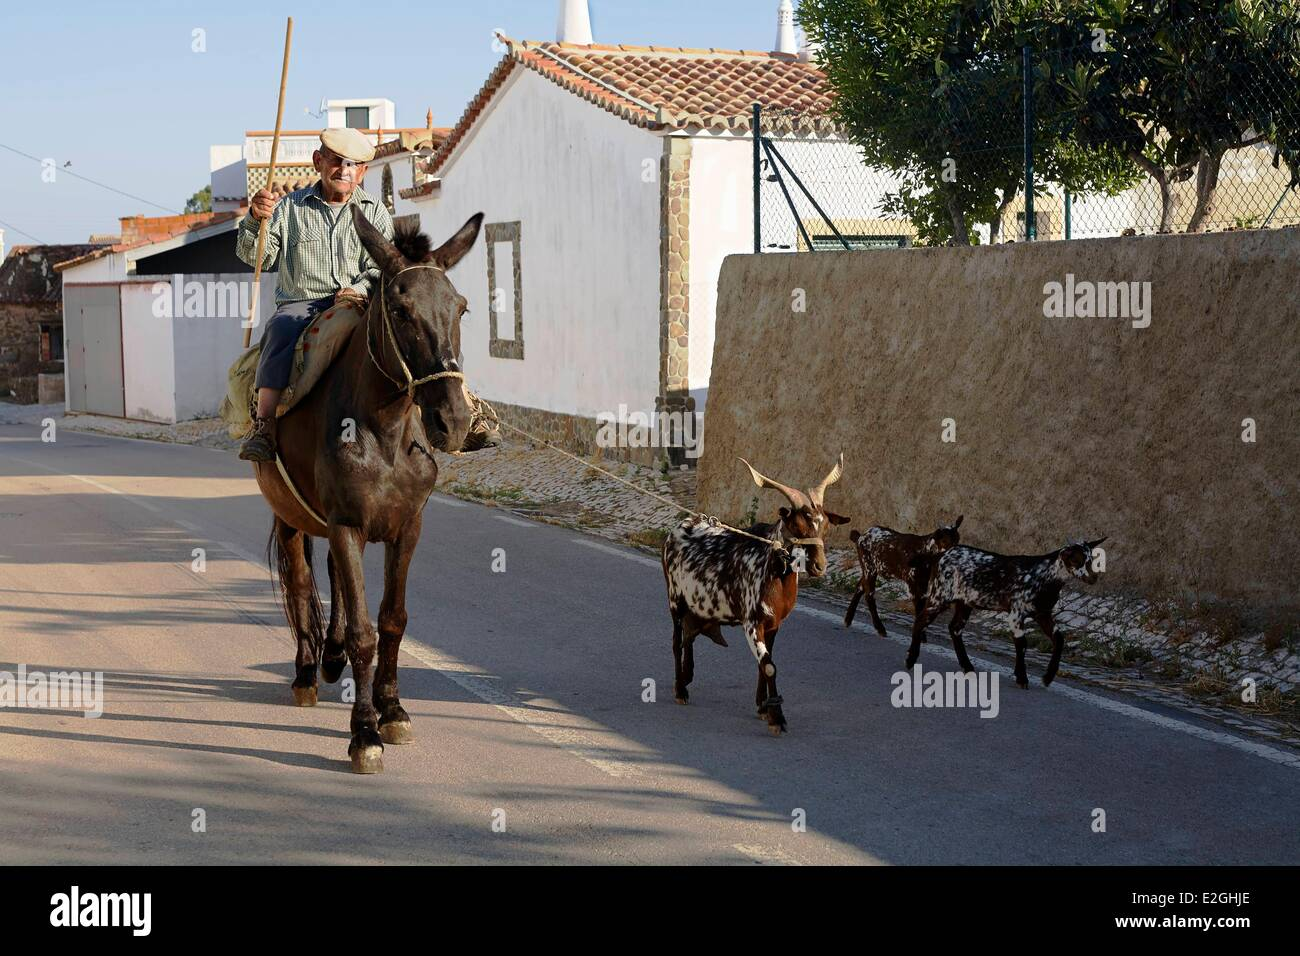 Portugal Algarve Furnazinhas Breeder on horseback and its goats in main village street Stock Photo